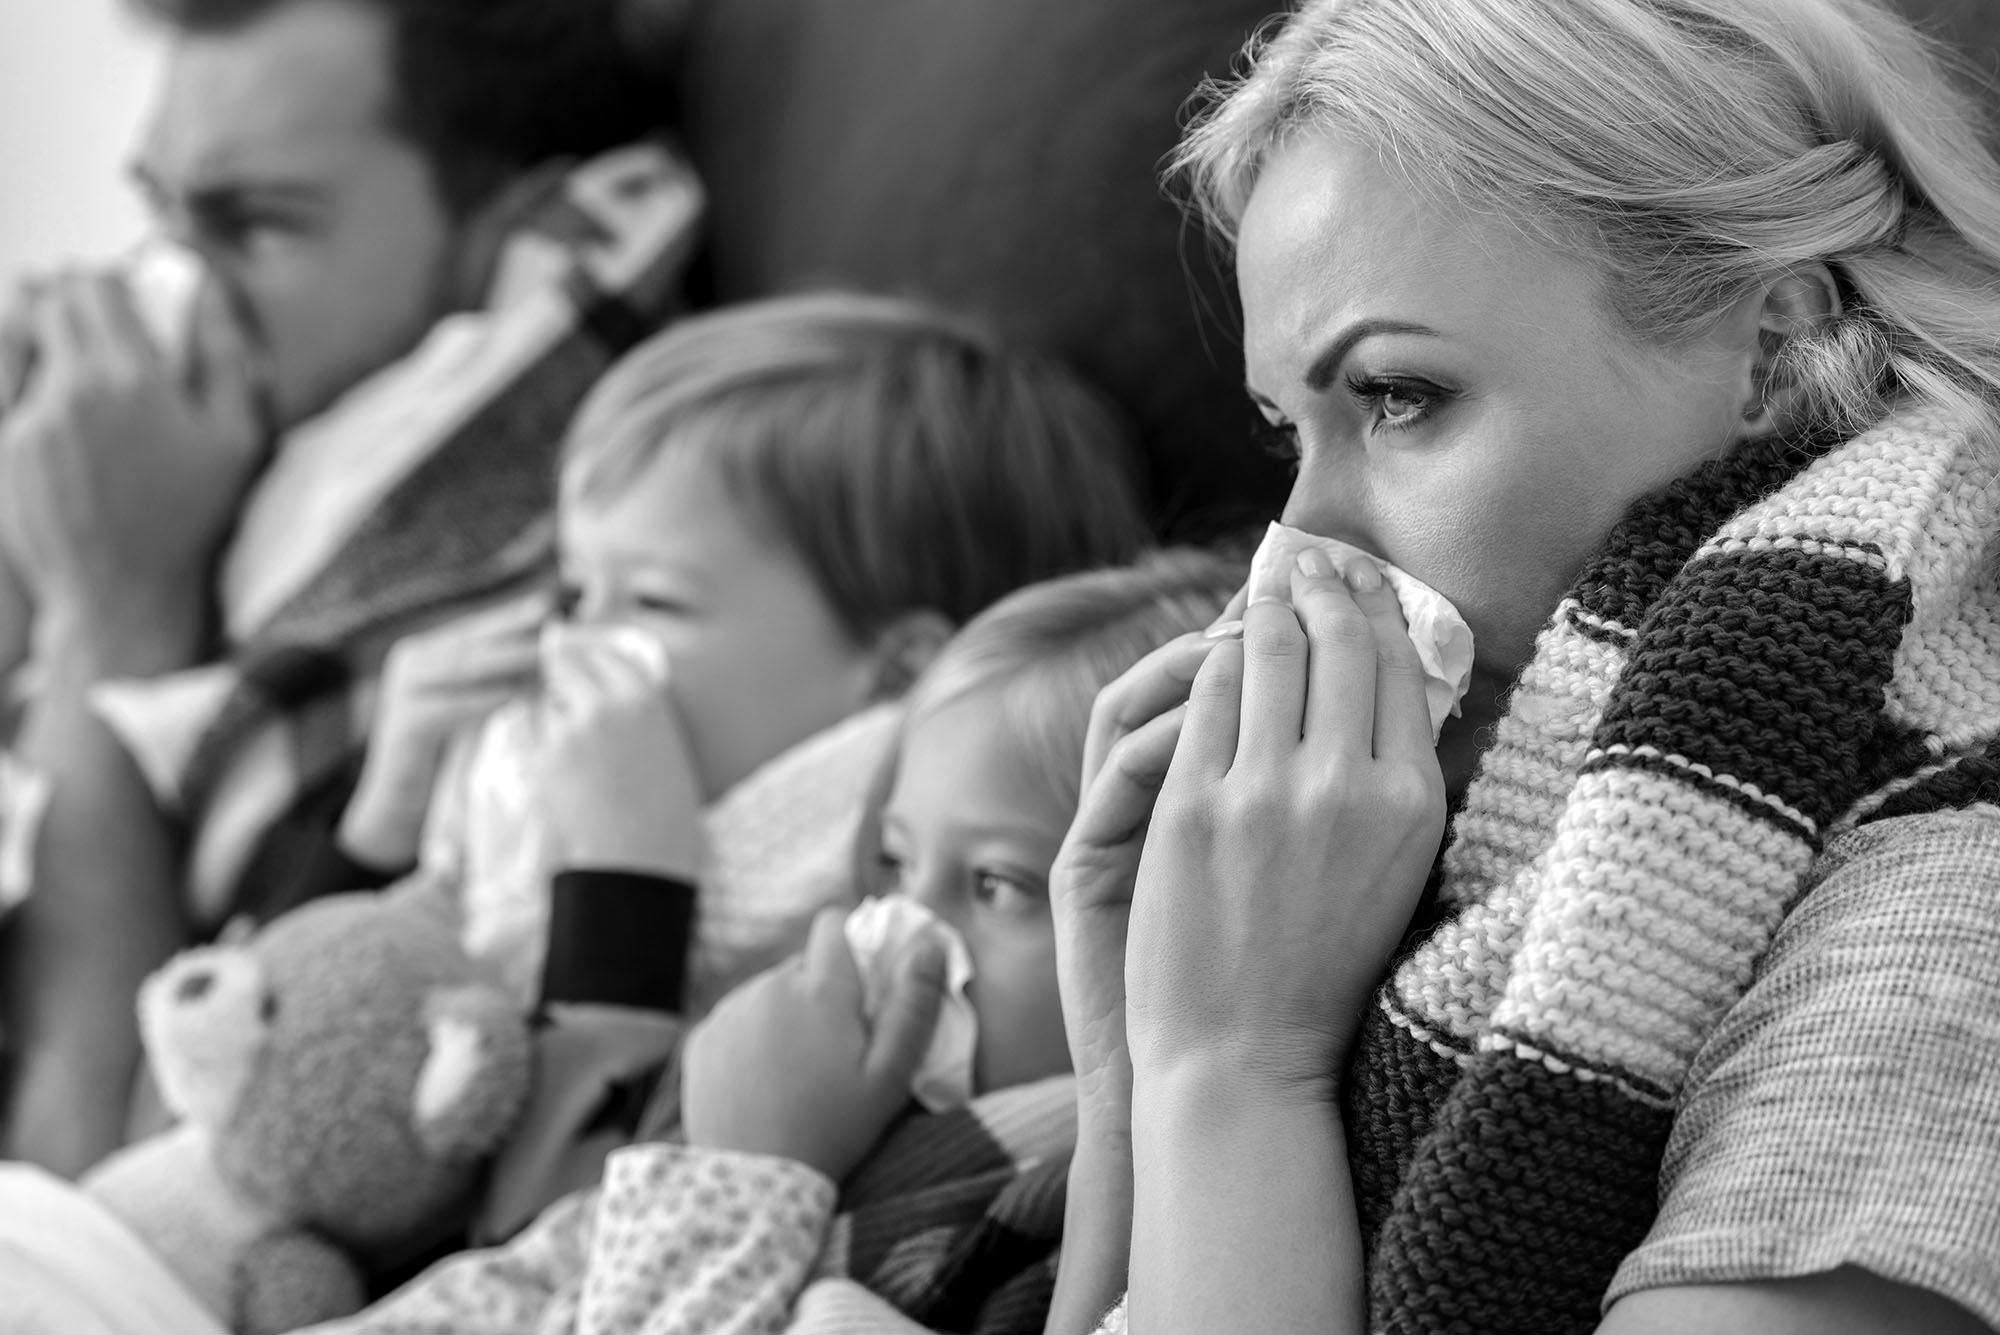 close-up shot of sick young family blowing noses with napkins together while lying in bed